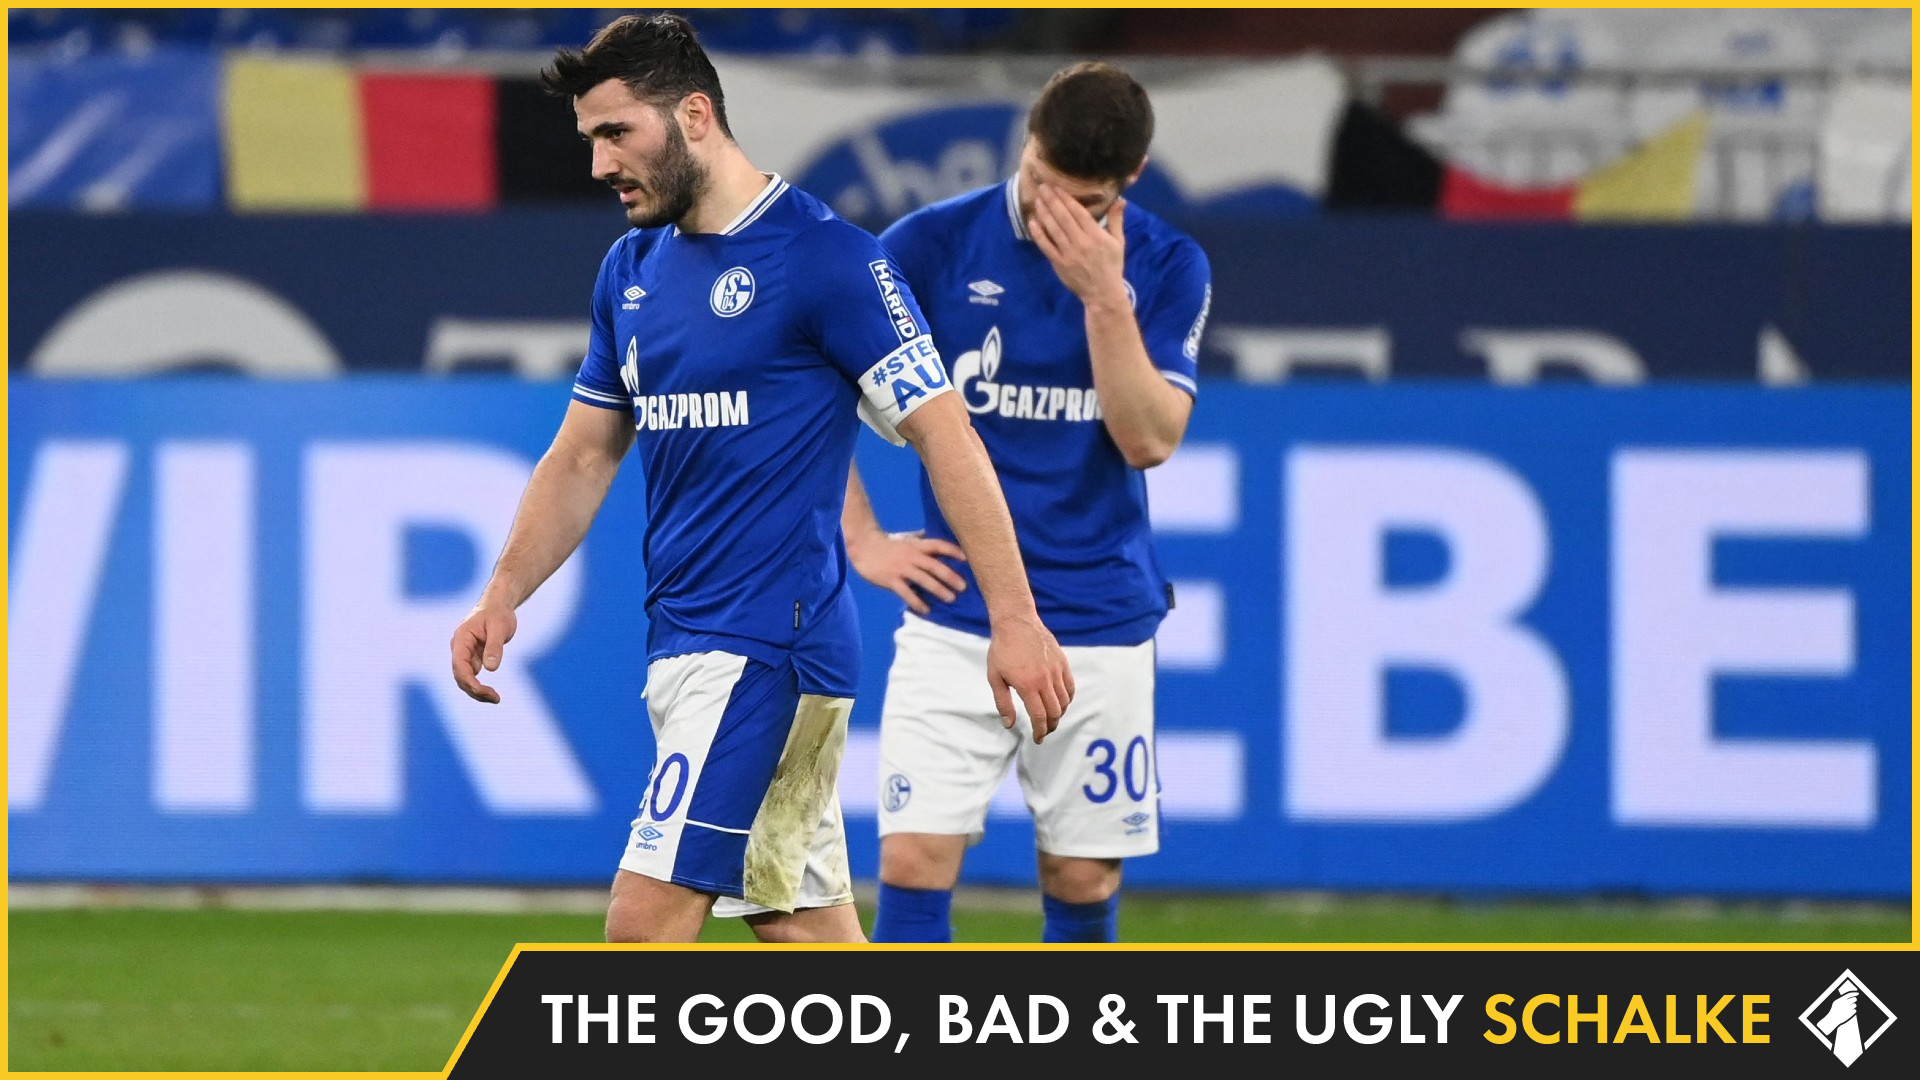 """""""FC Schalke 04 - The Good, The Bad & The Ugly"""" feature image"""